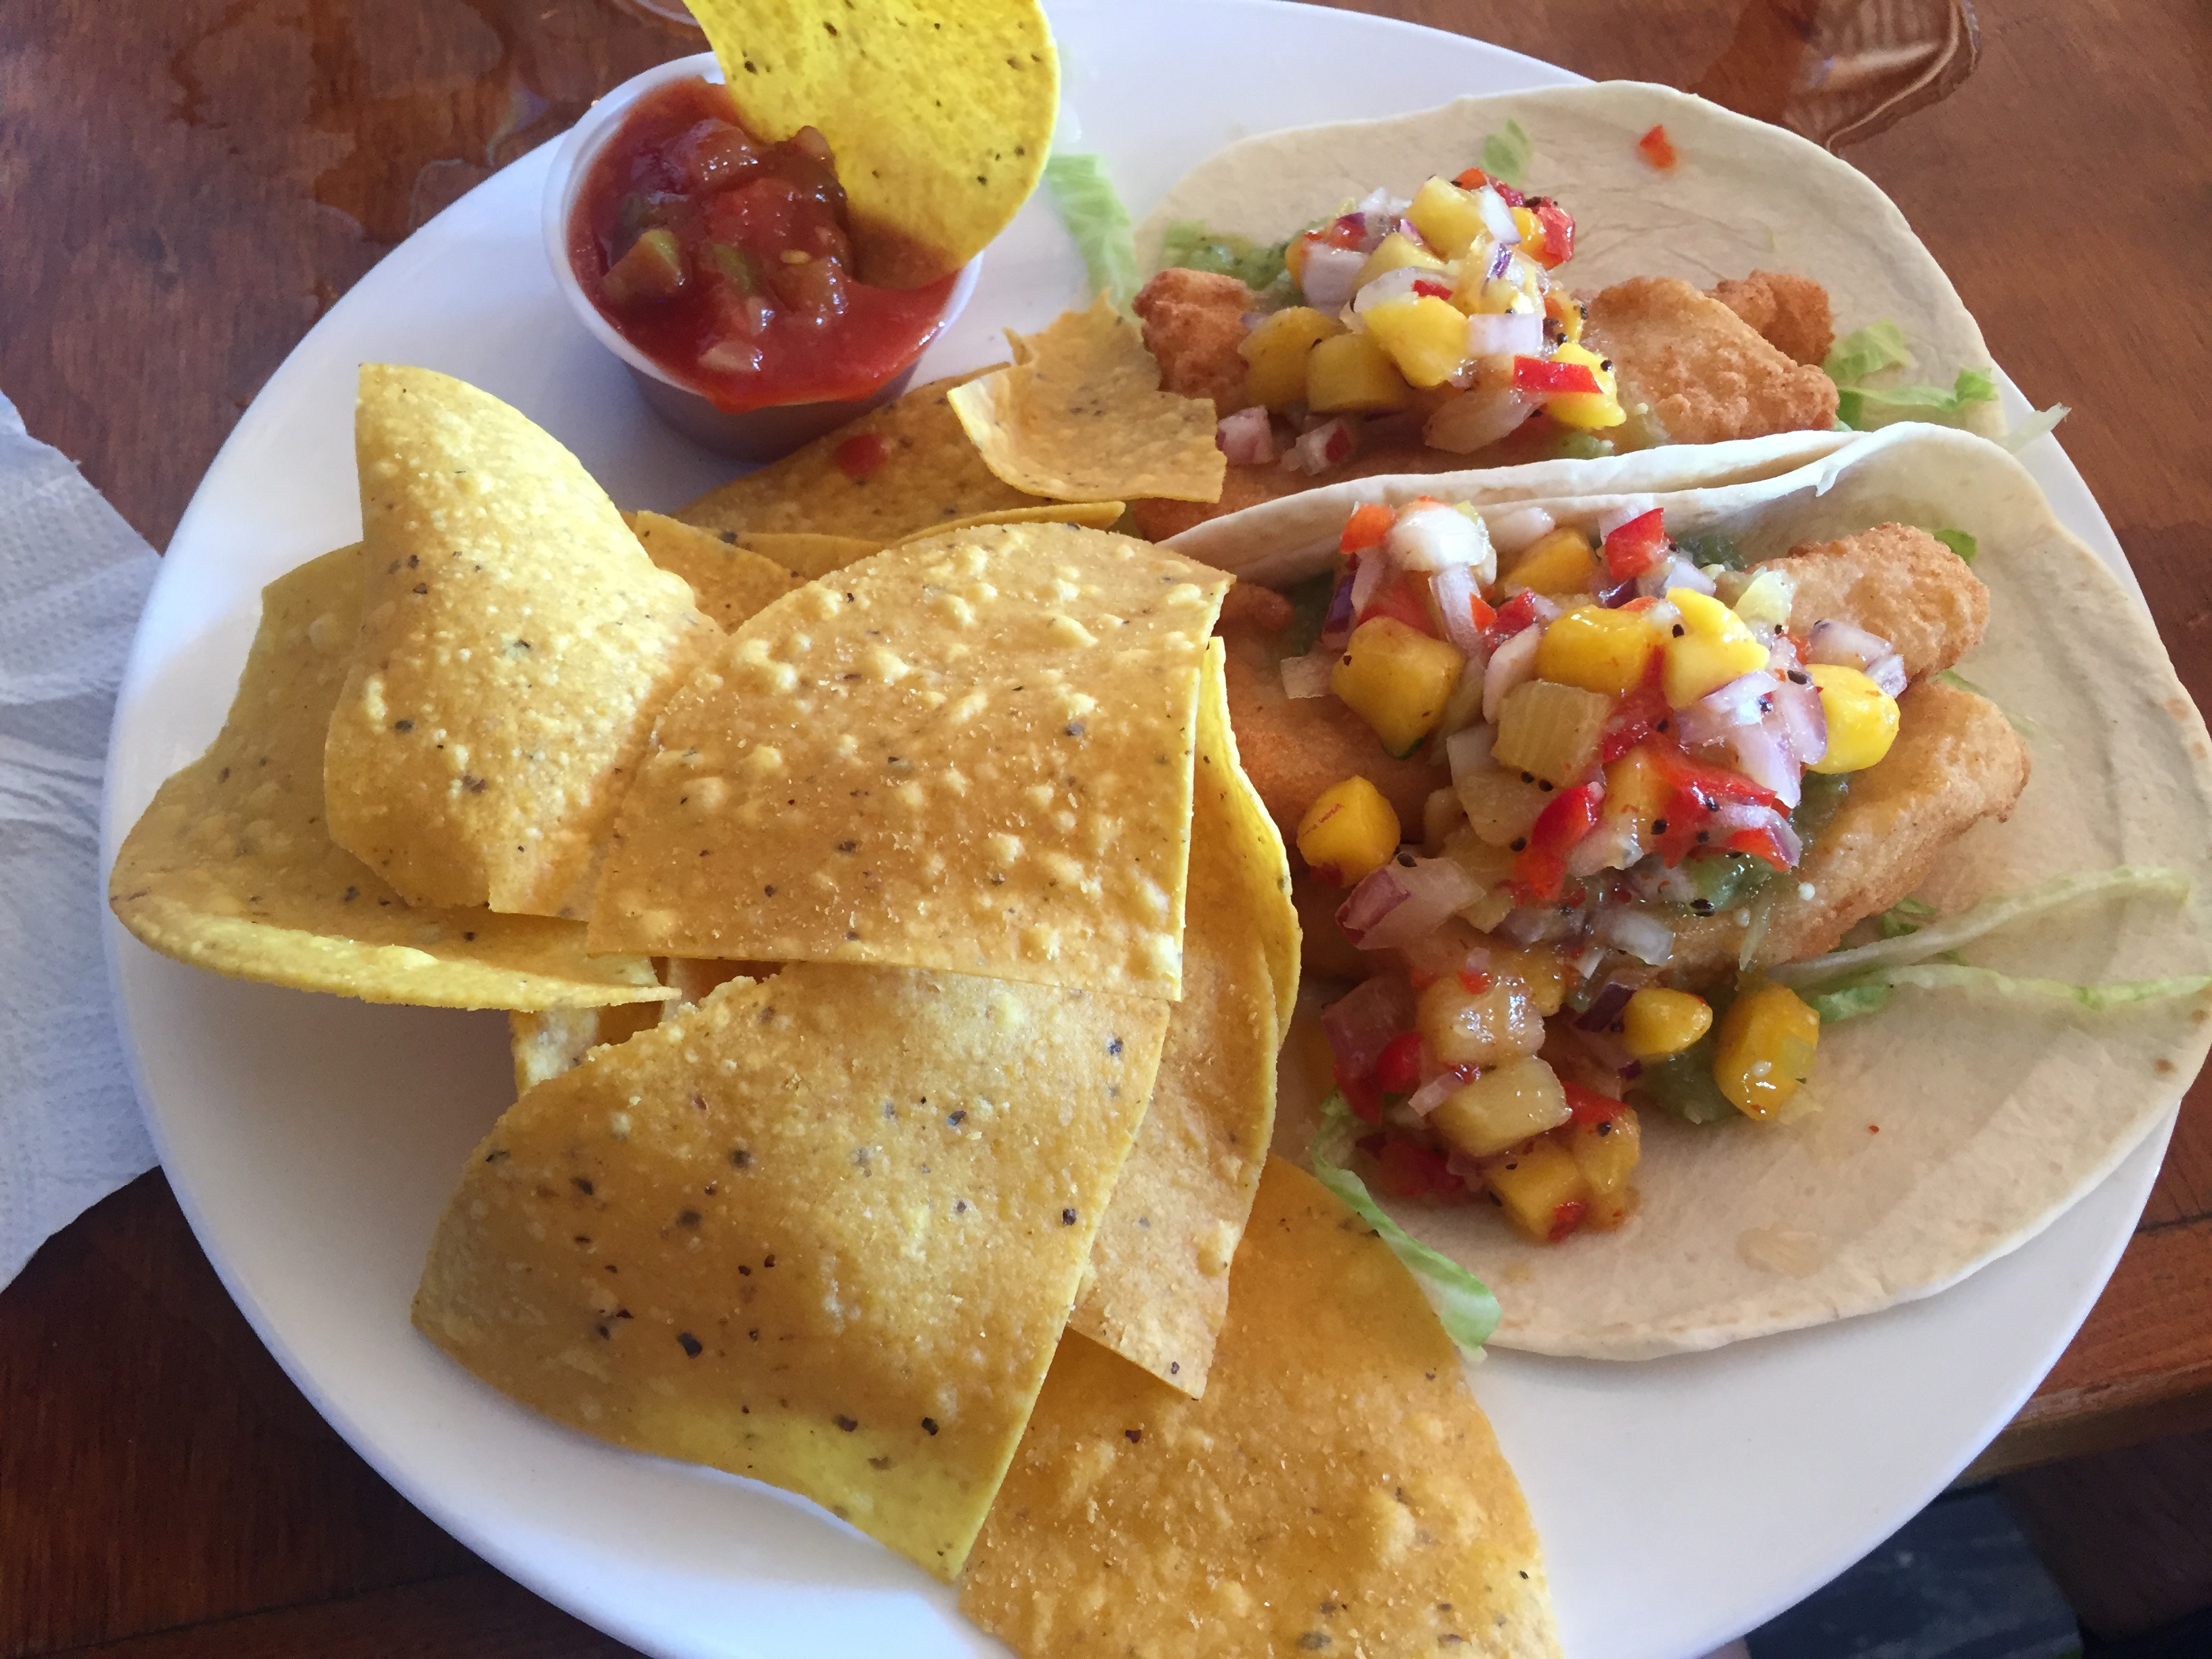 Fish tacos with mango salsa verde and chips from Gilligan's Island Grill in Sarasota.